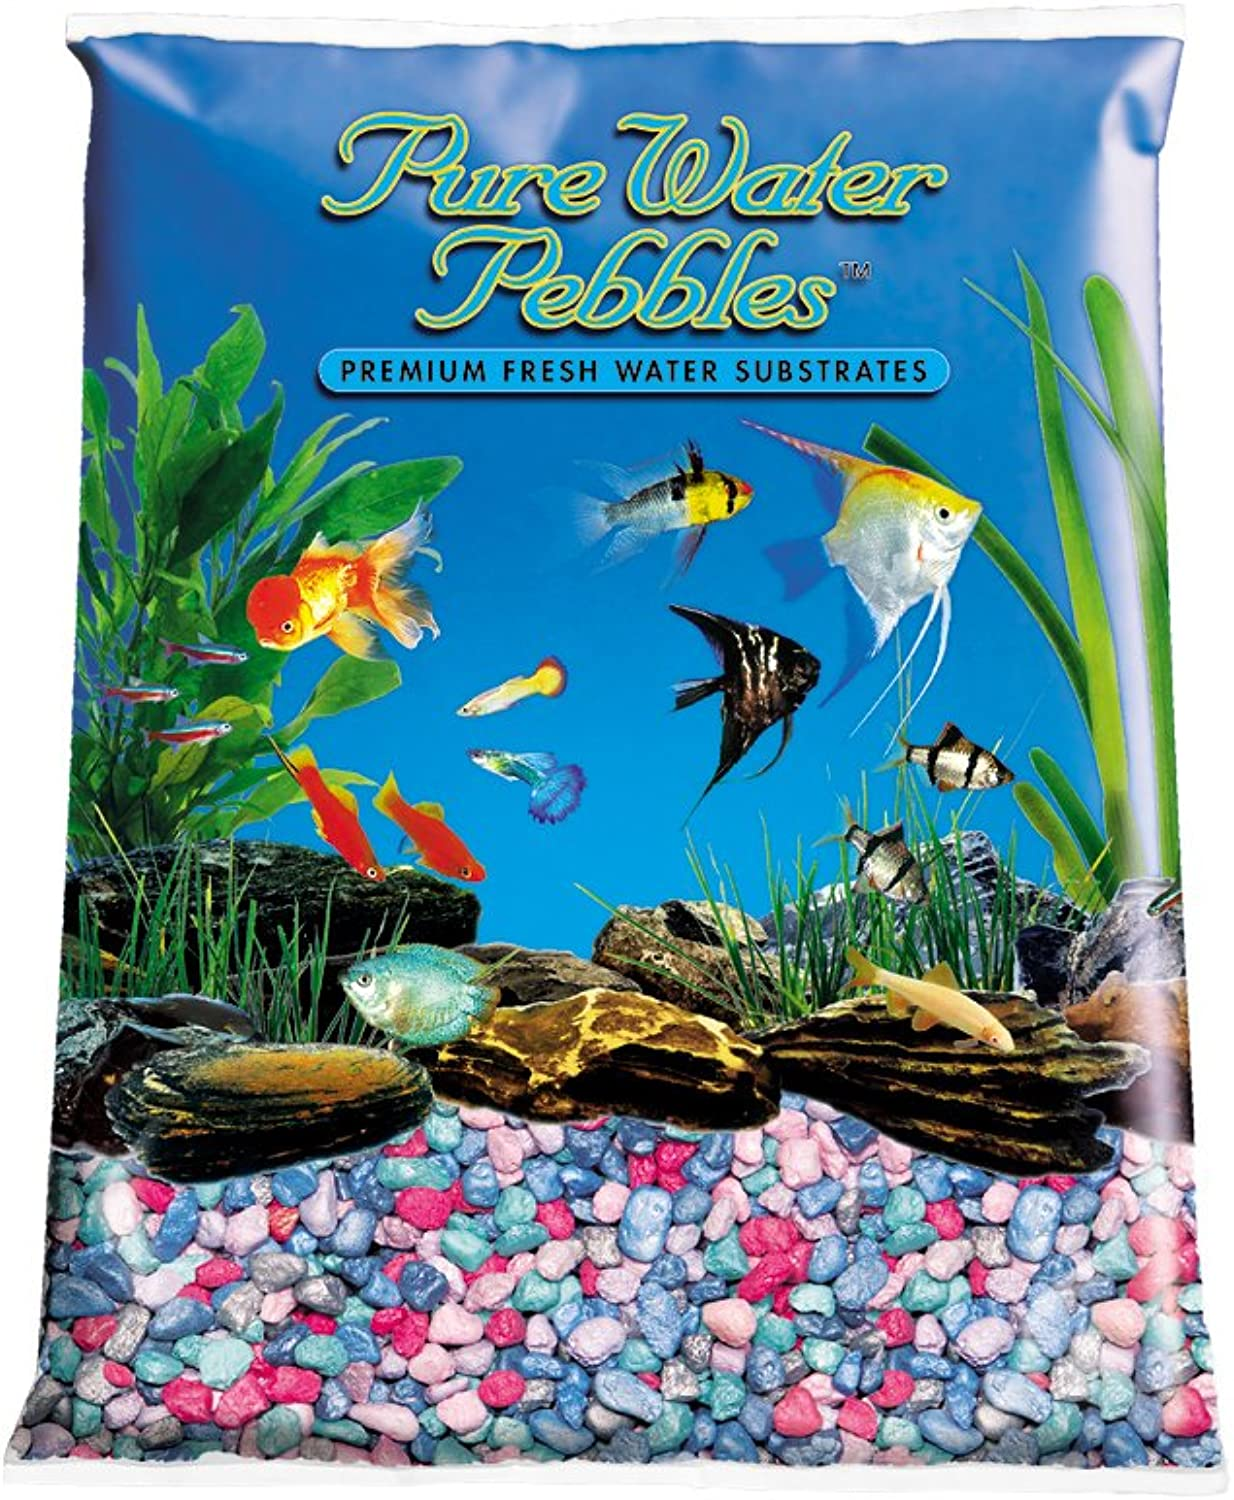 Pure Water Pebbles Aquarium Gravel, 25Pound, Rainbow Frost by Pure Water Pebbles